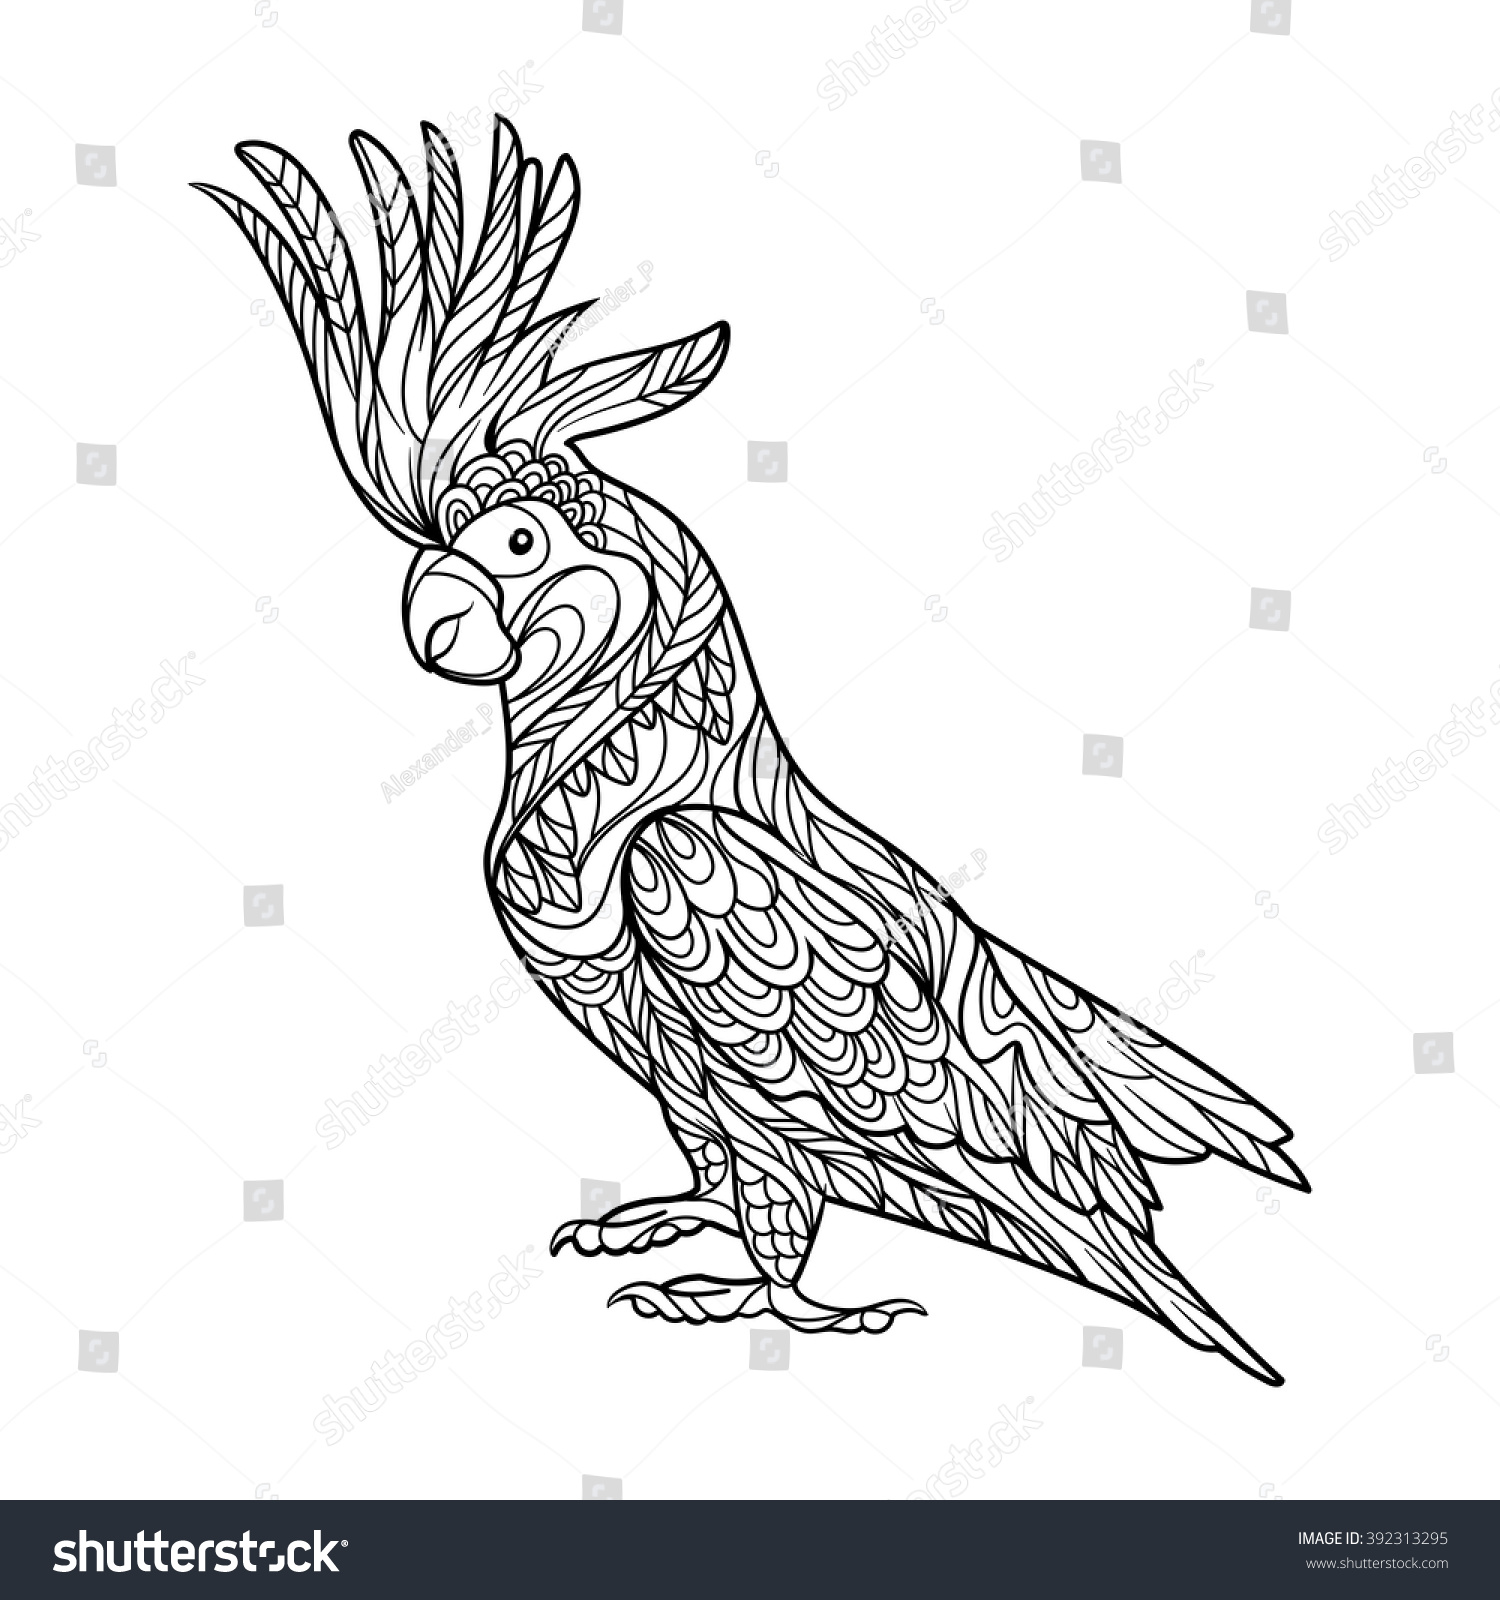 Cockatoo Parrot Bird Coloring Book For Adults Vector Illustration Anti Stress Adult